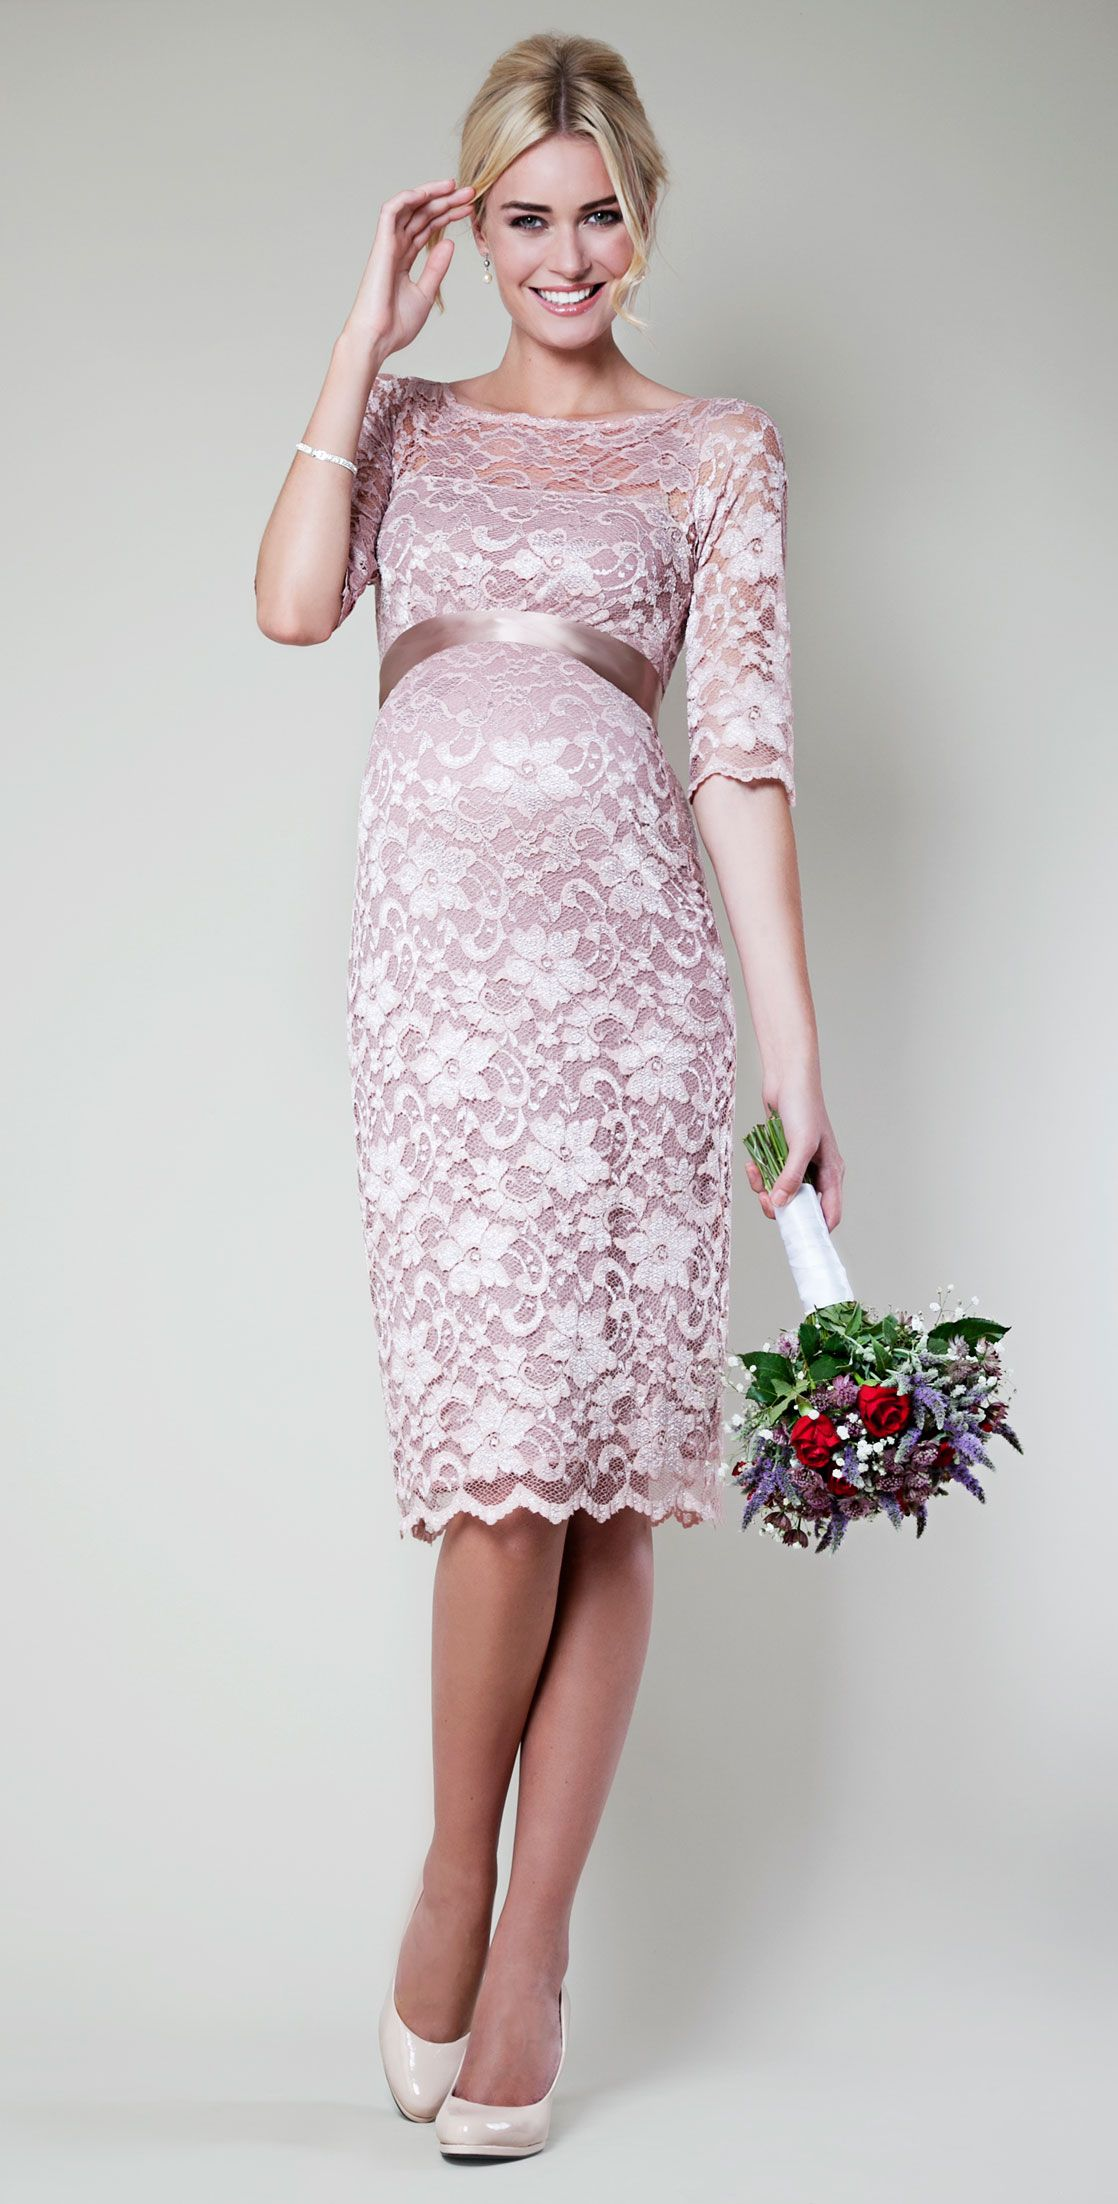 Amelia dress short easy people and tiffany rose amelia lace maternity dress short vintage rose maternity wedding dresses evening wear and party clothes by tiffany rose ombrellifo Choice Image